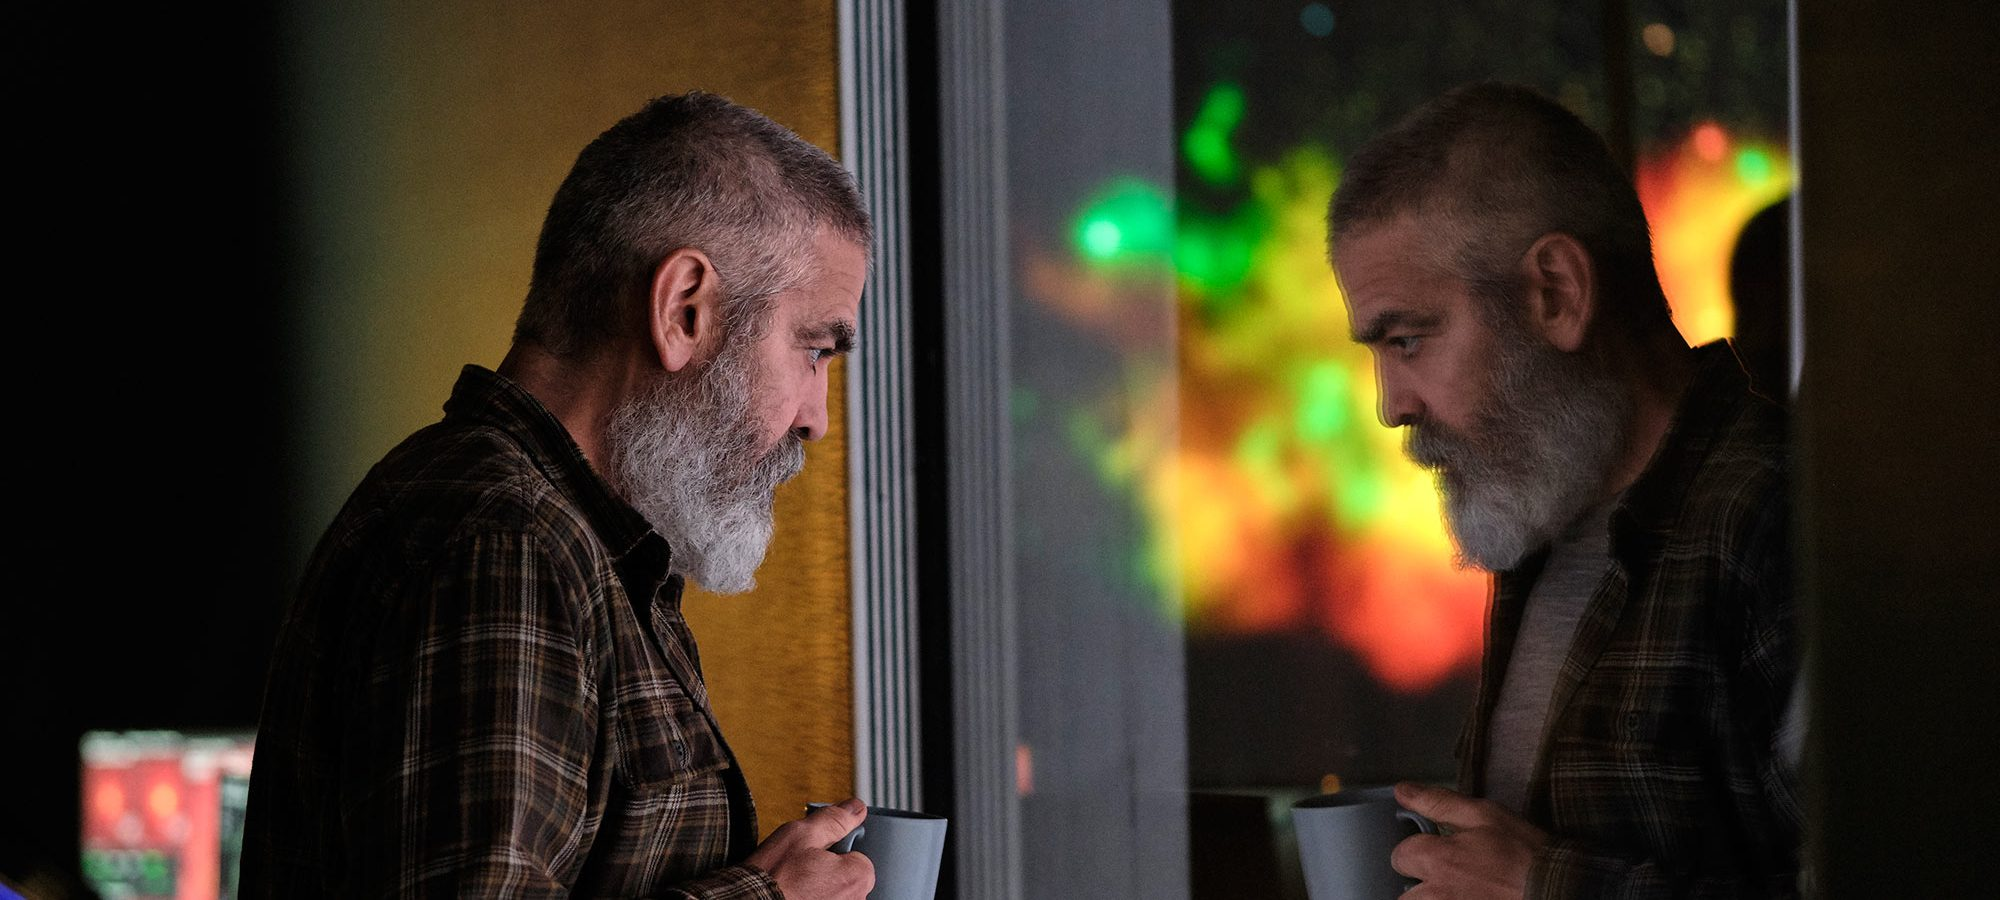 The Midnight Sky' Review: George Clooney's Sodden Dystopian Drama - Variety